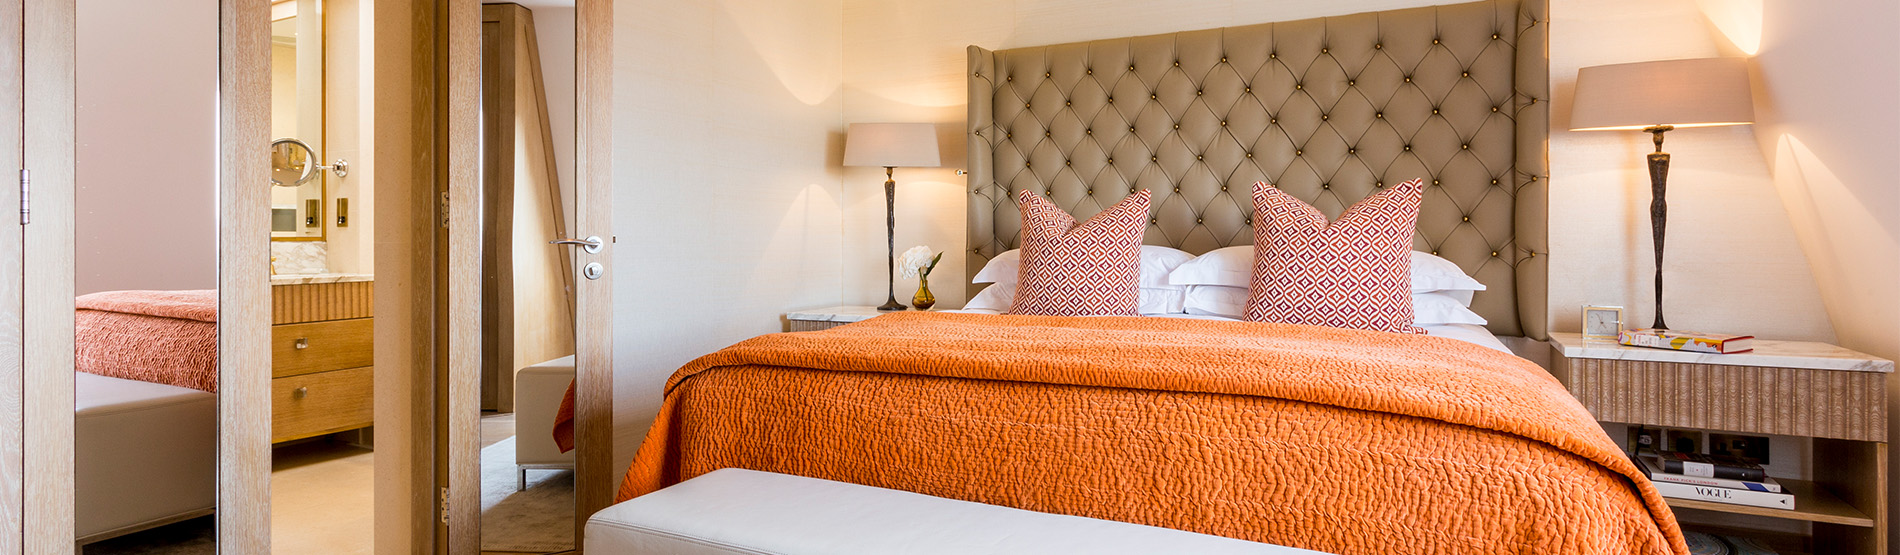 The Harley Suite, spacious suite with orange hues bringing a wlecoming warmth to the suite